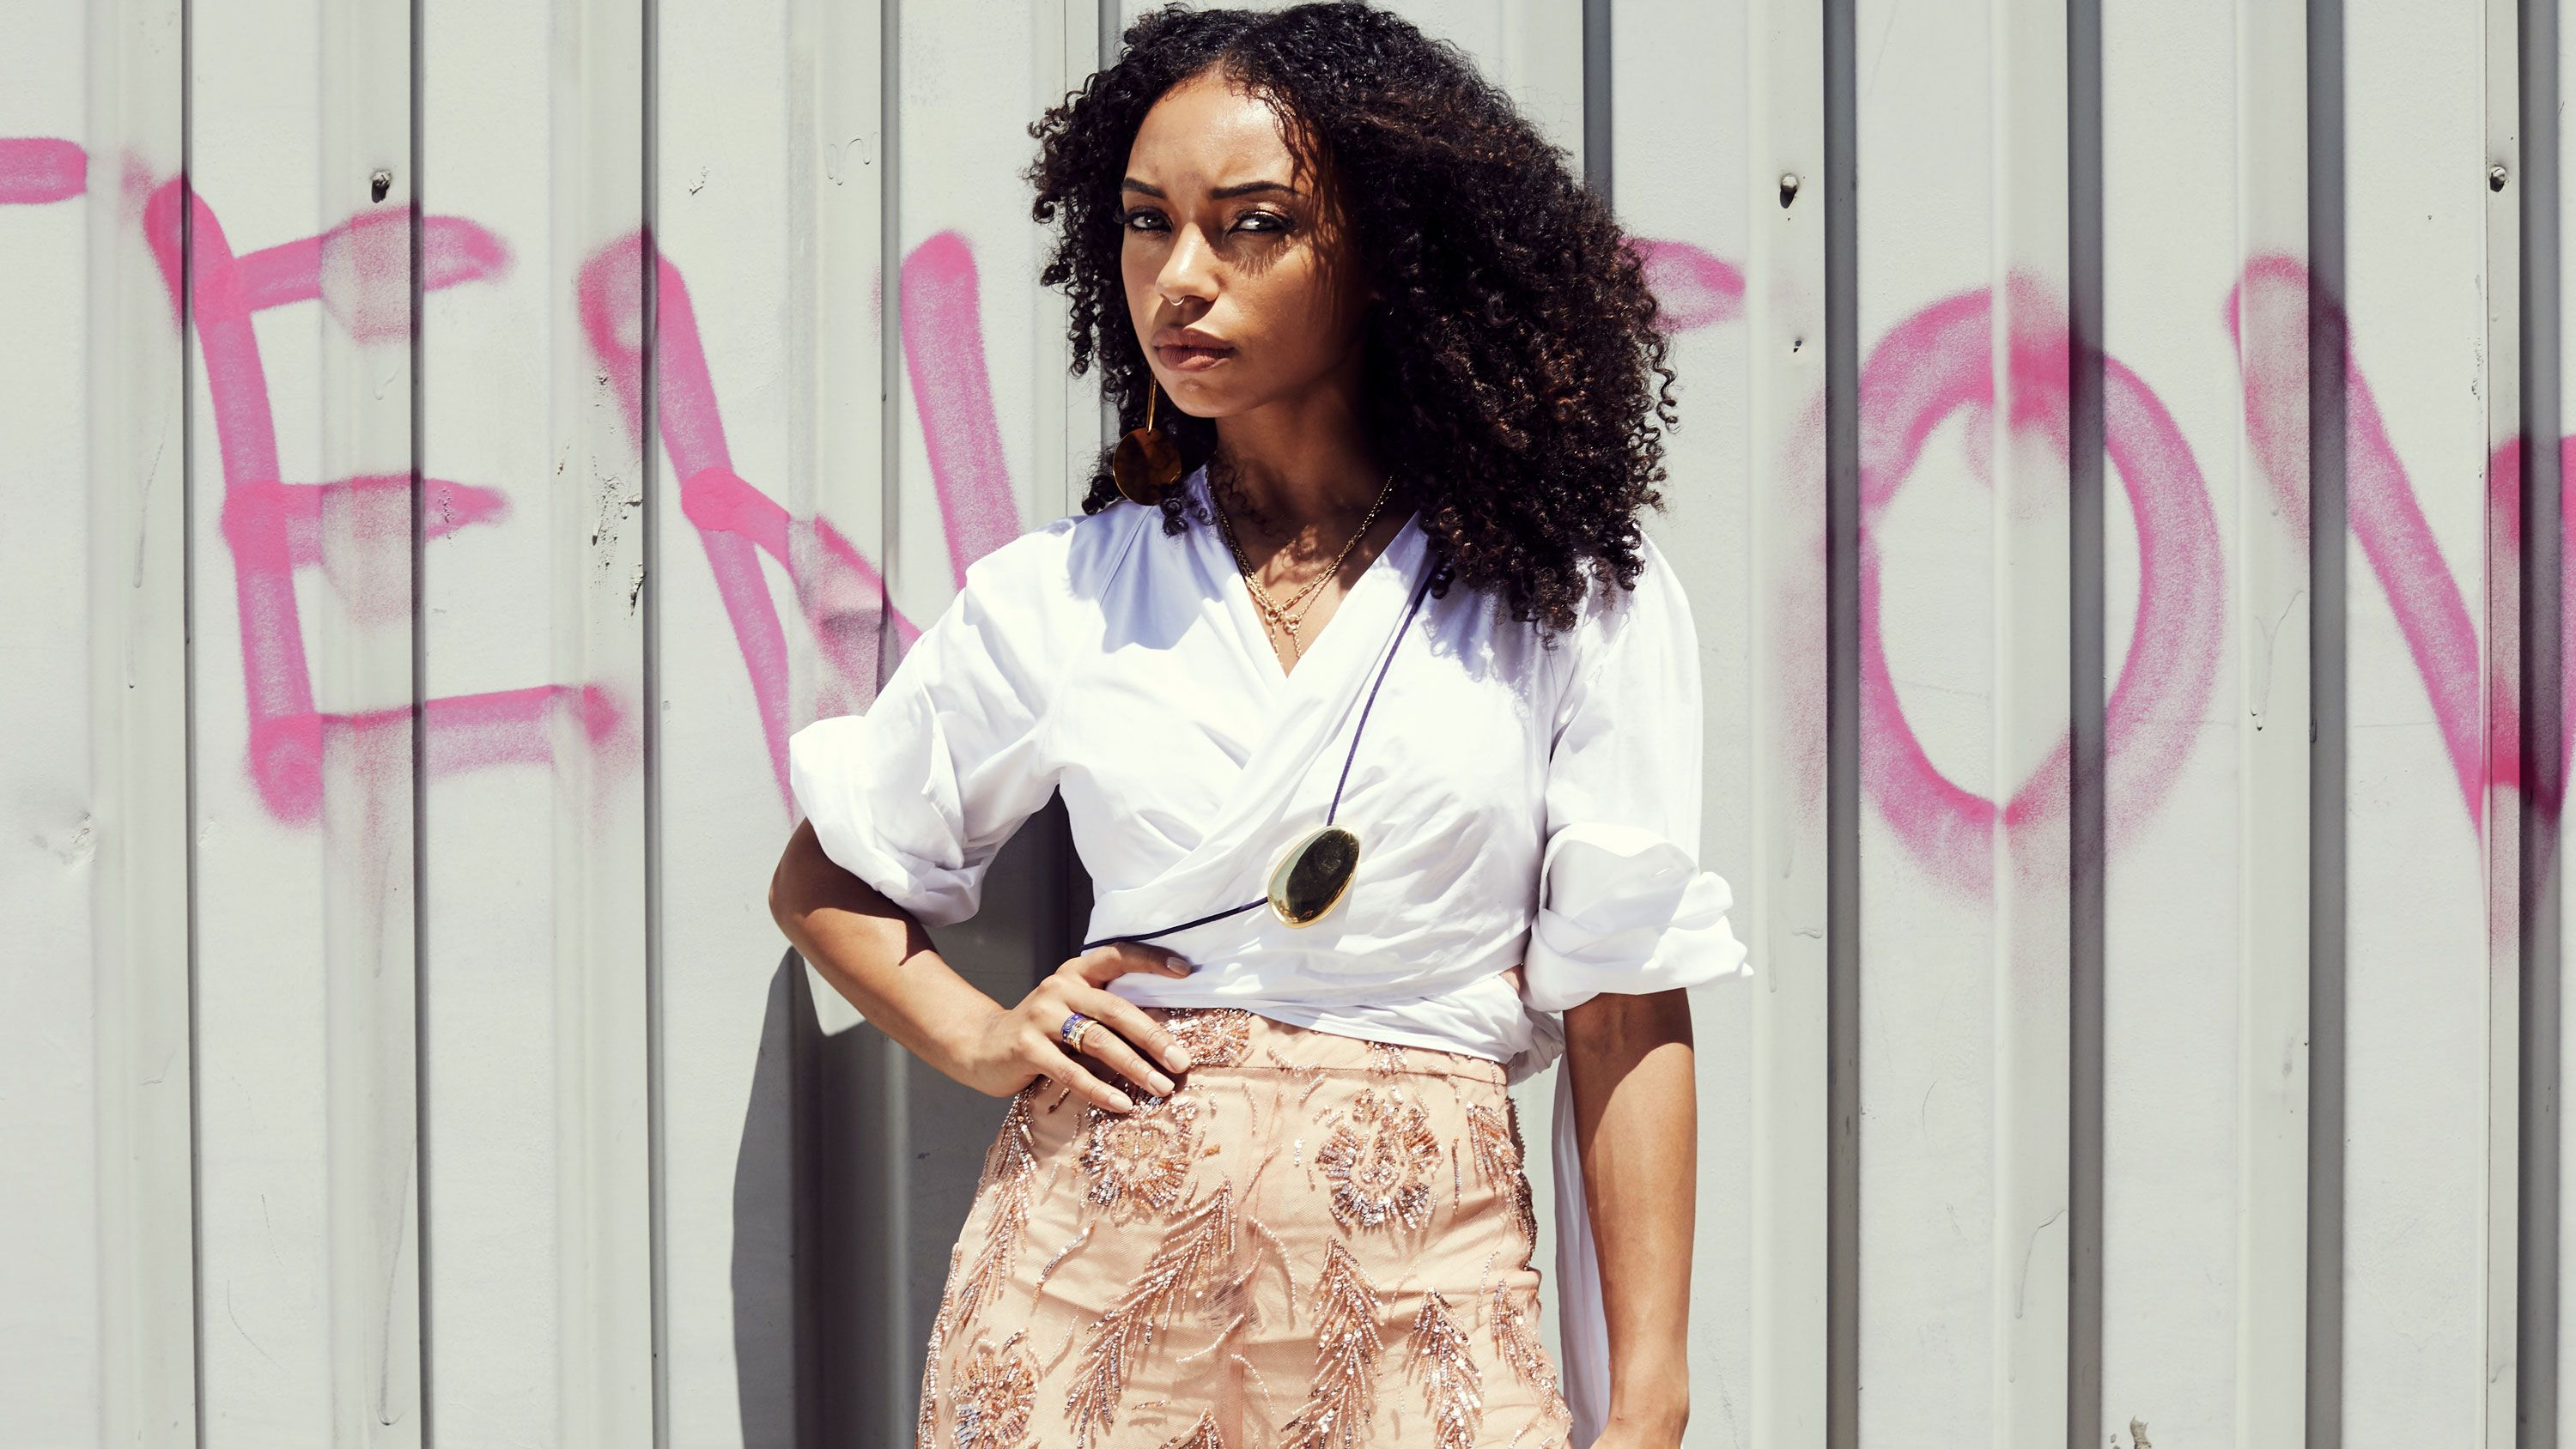 Dear White People's Logan Browning Isn't Just an Actress, She's an Activist